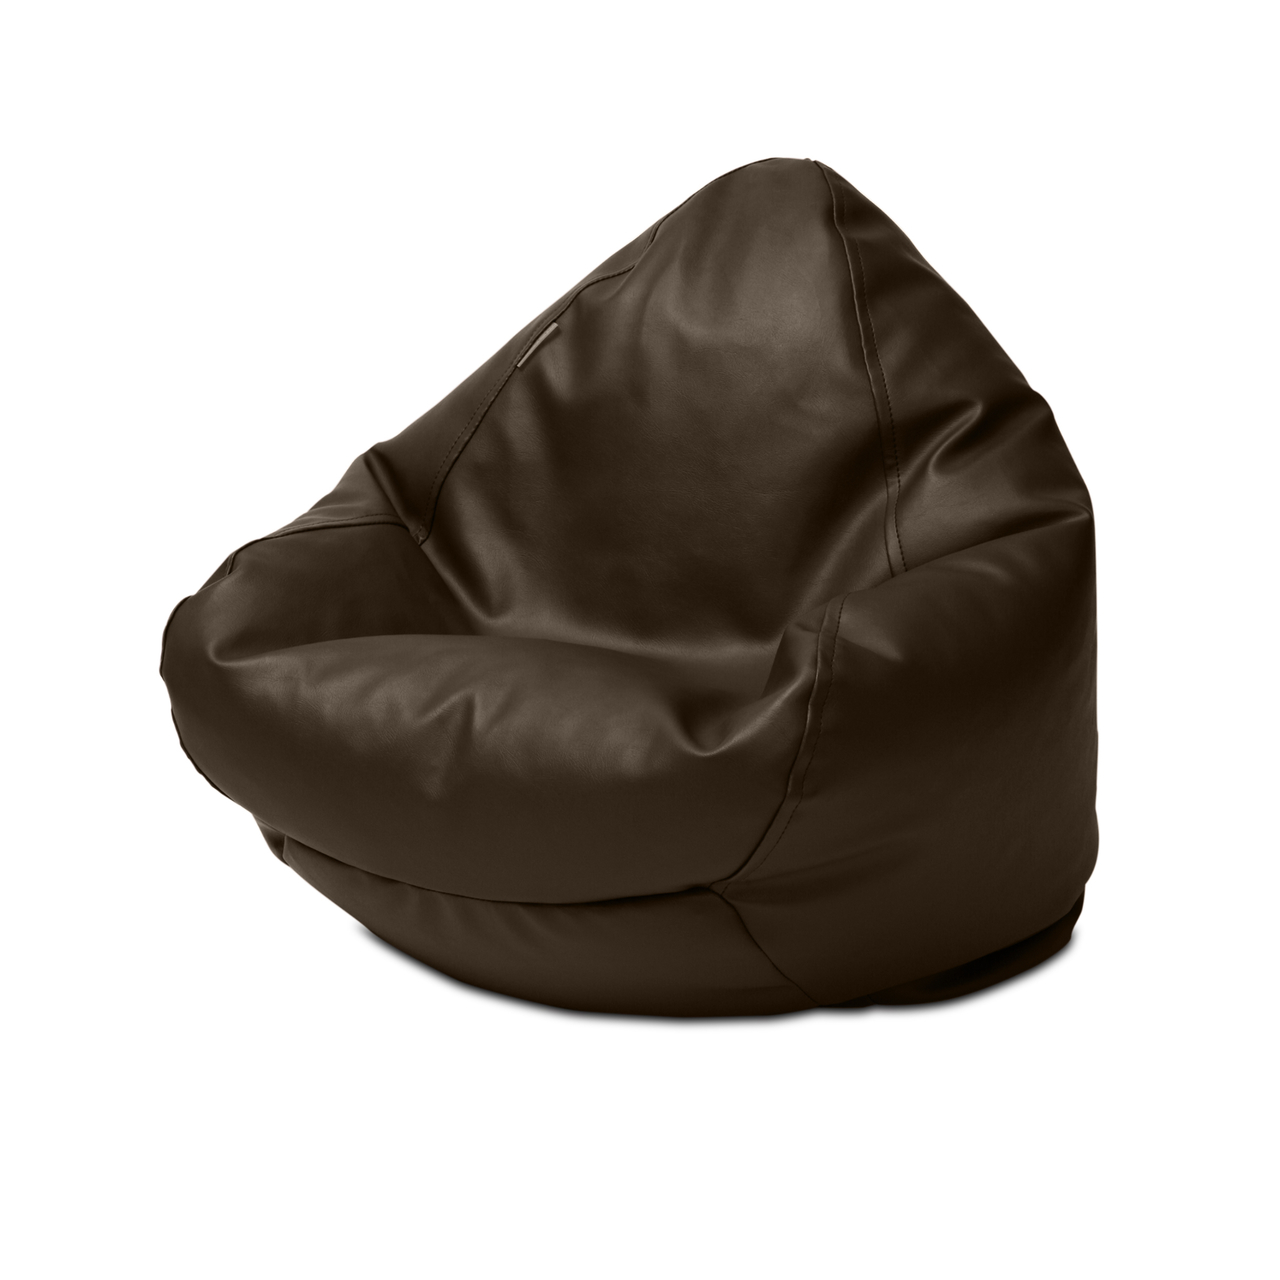 Classic Kids Bean Bag in chocolate